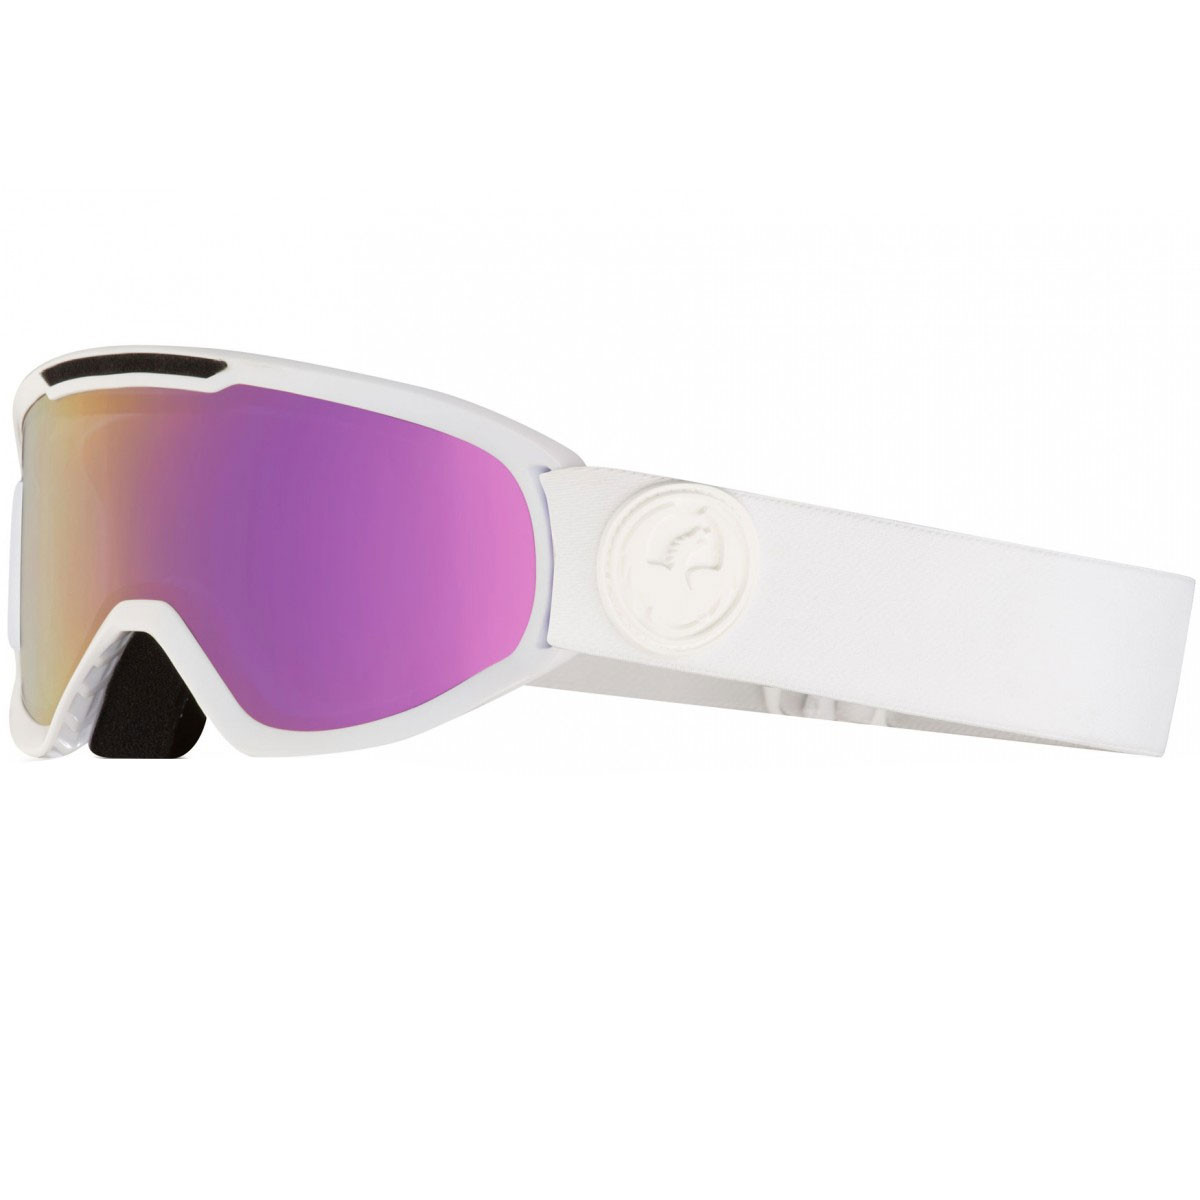 5d0c56afd882 Dragon DX2 Snowboard Goggles - Whiteout Lumalens Pink Ion